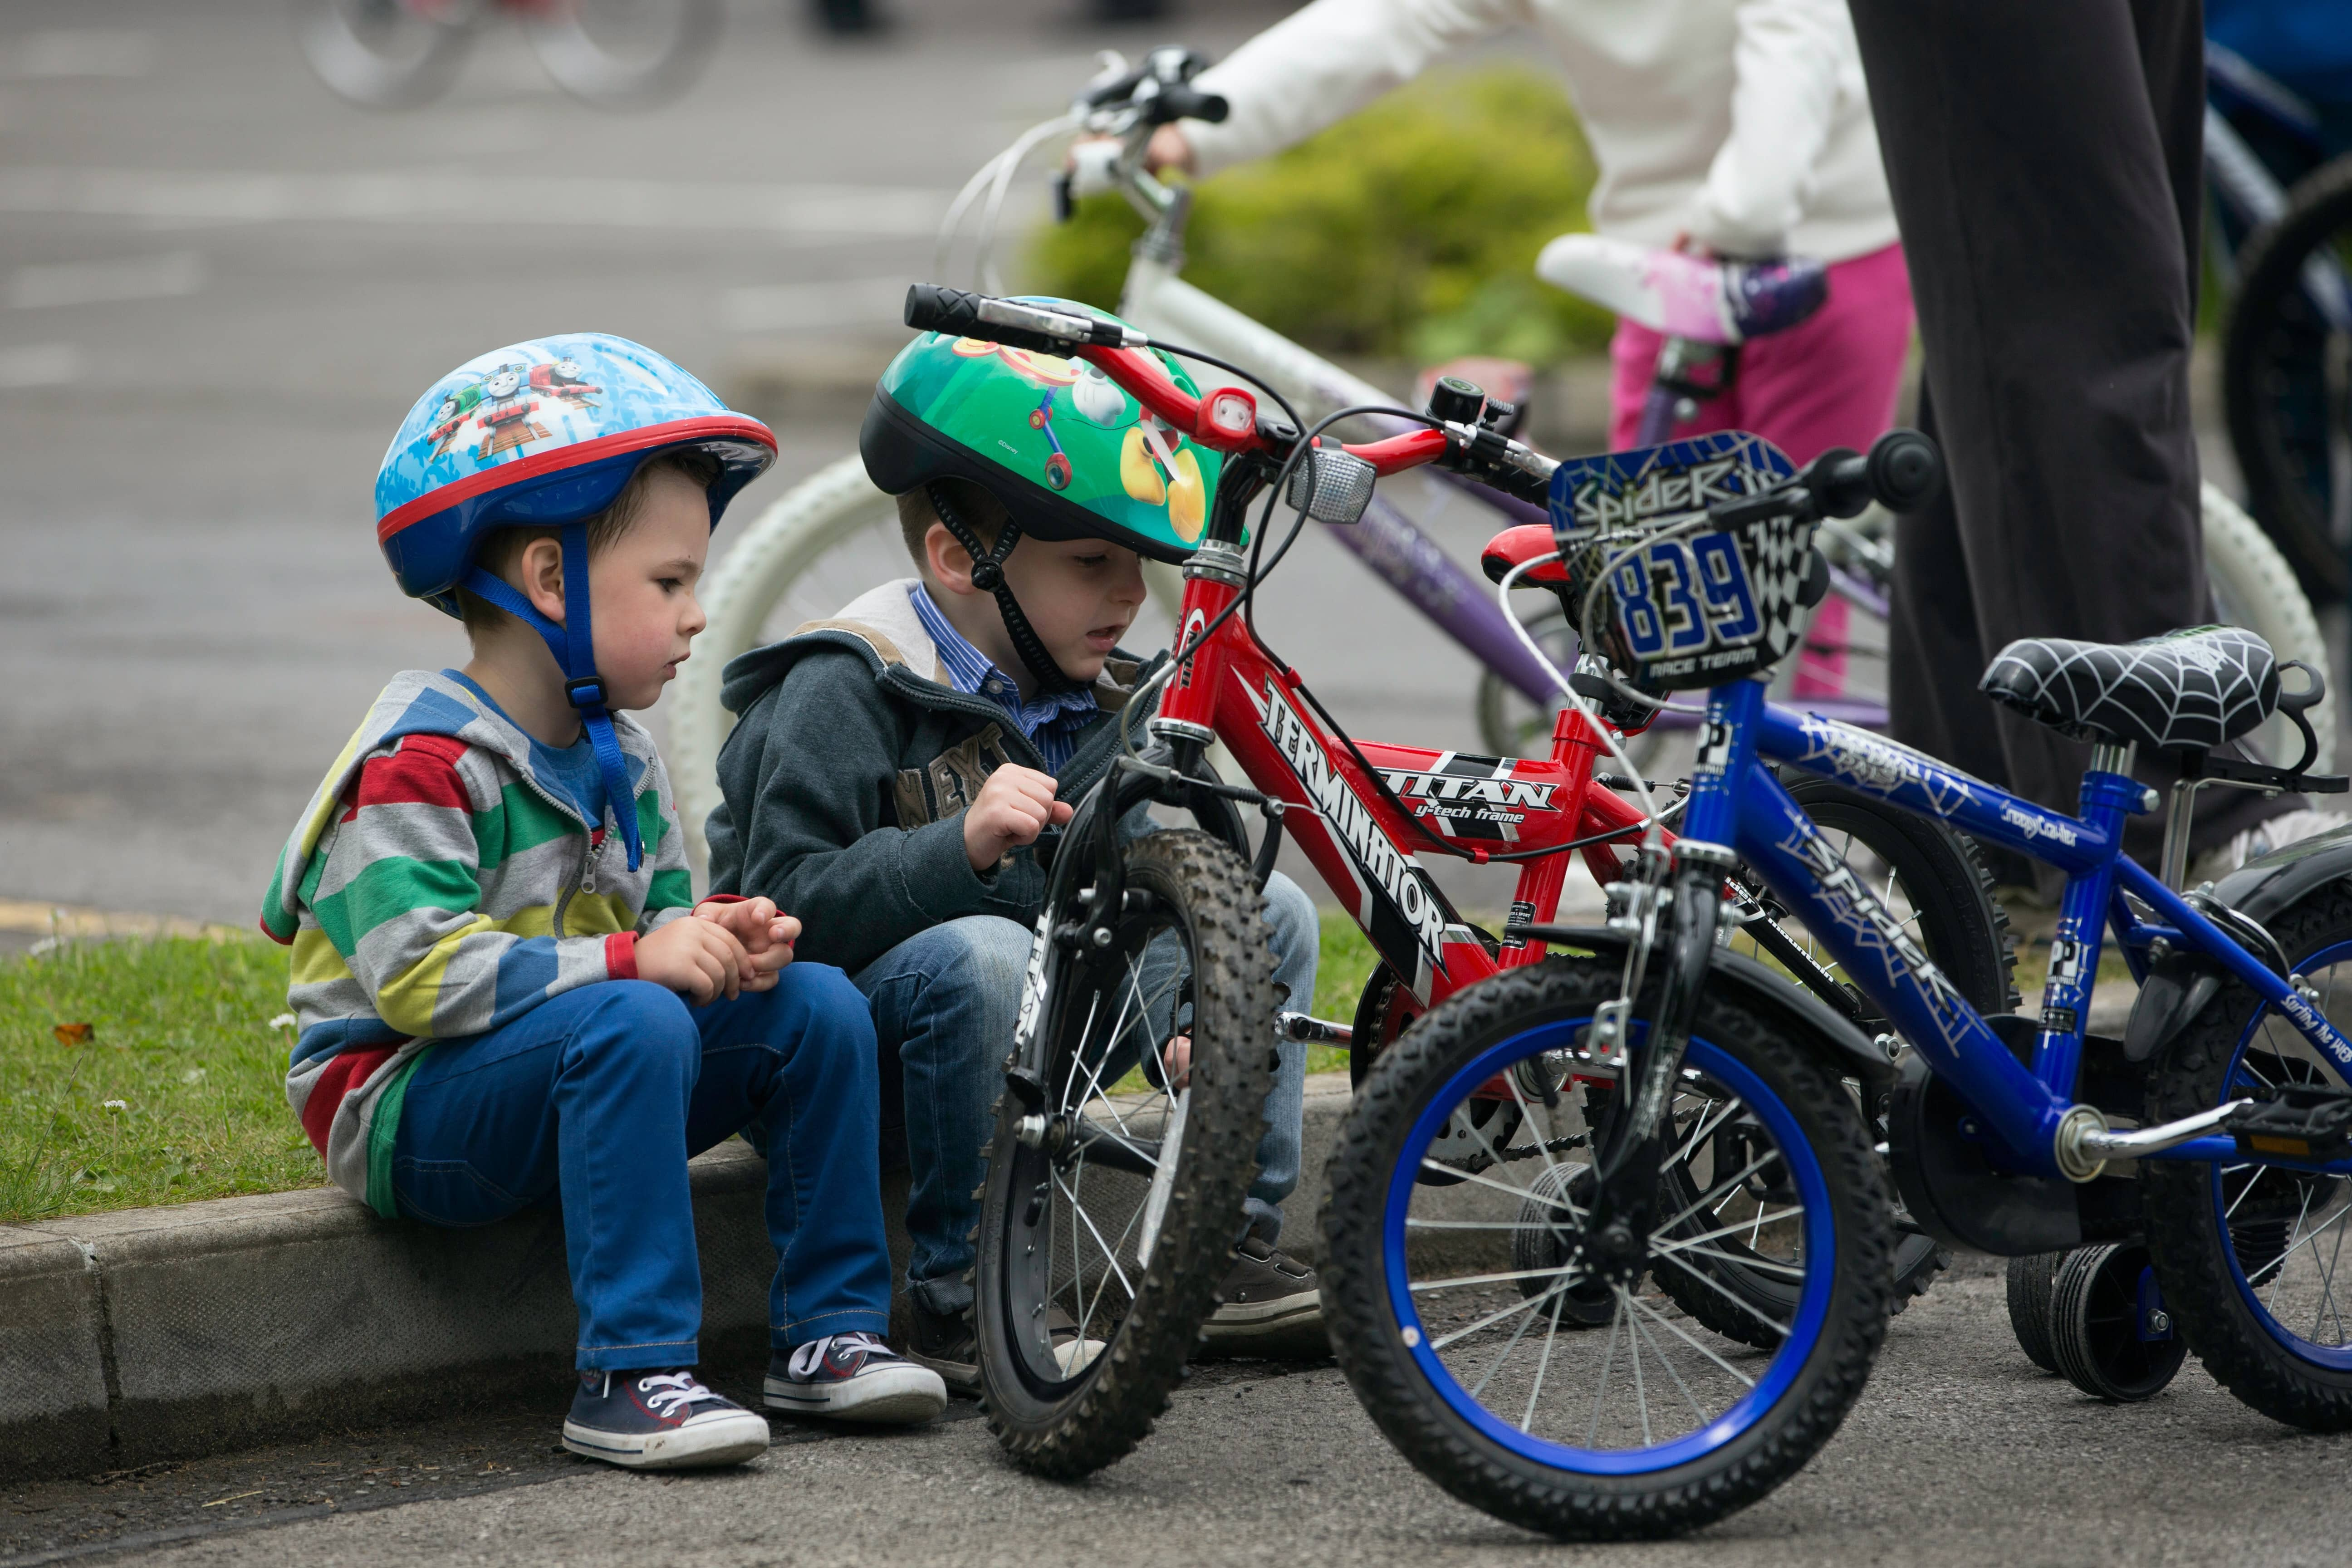 Two little kids with their bikes